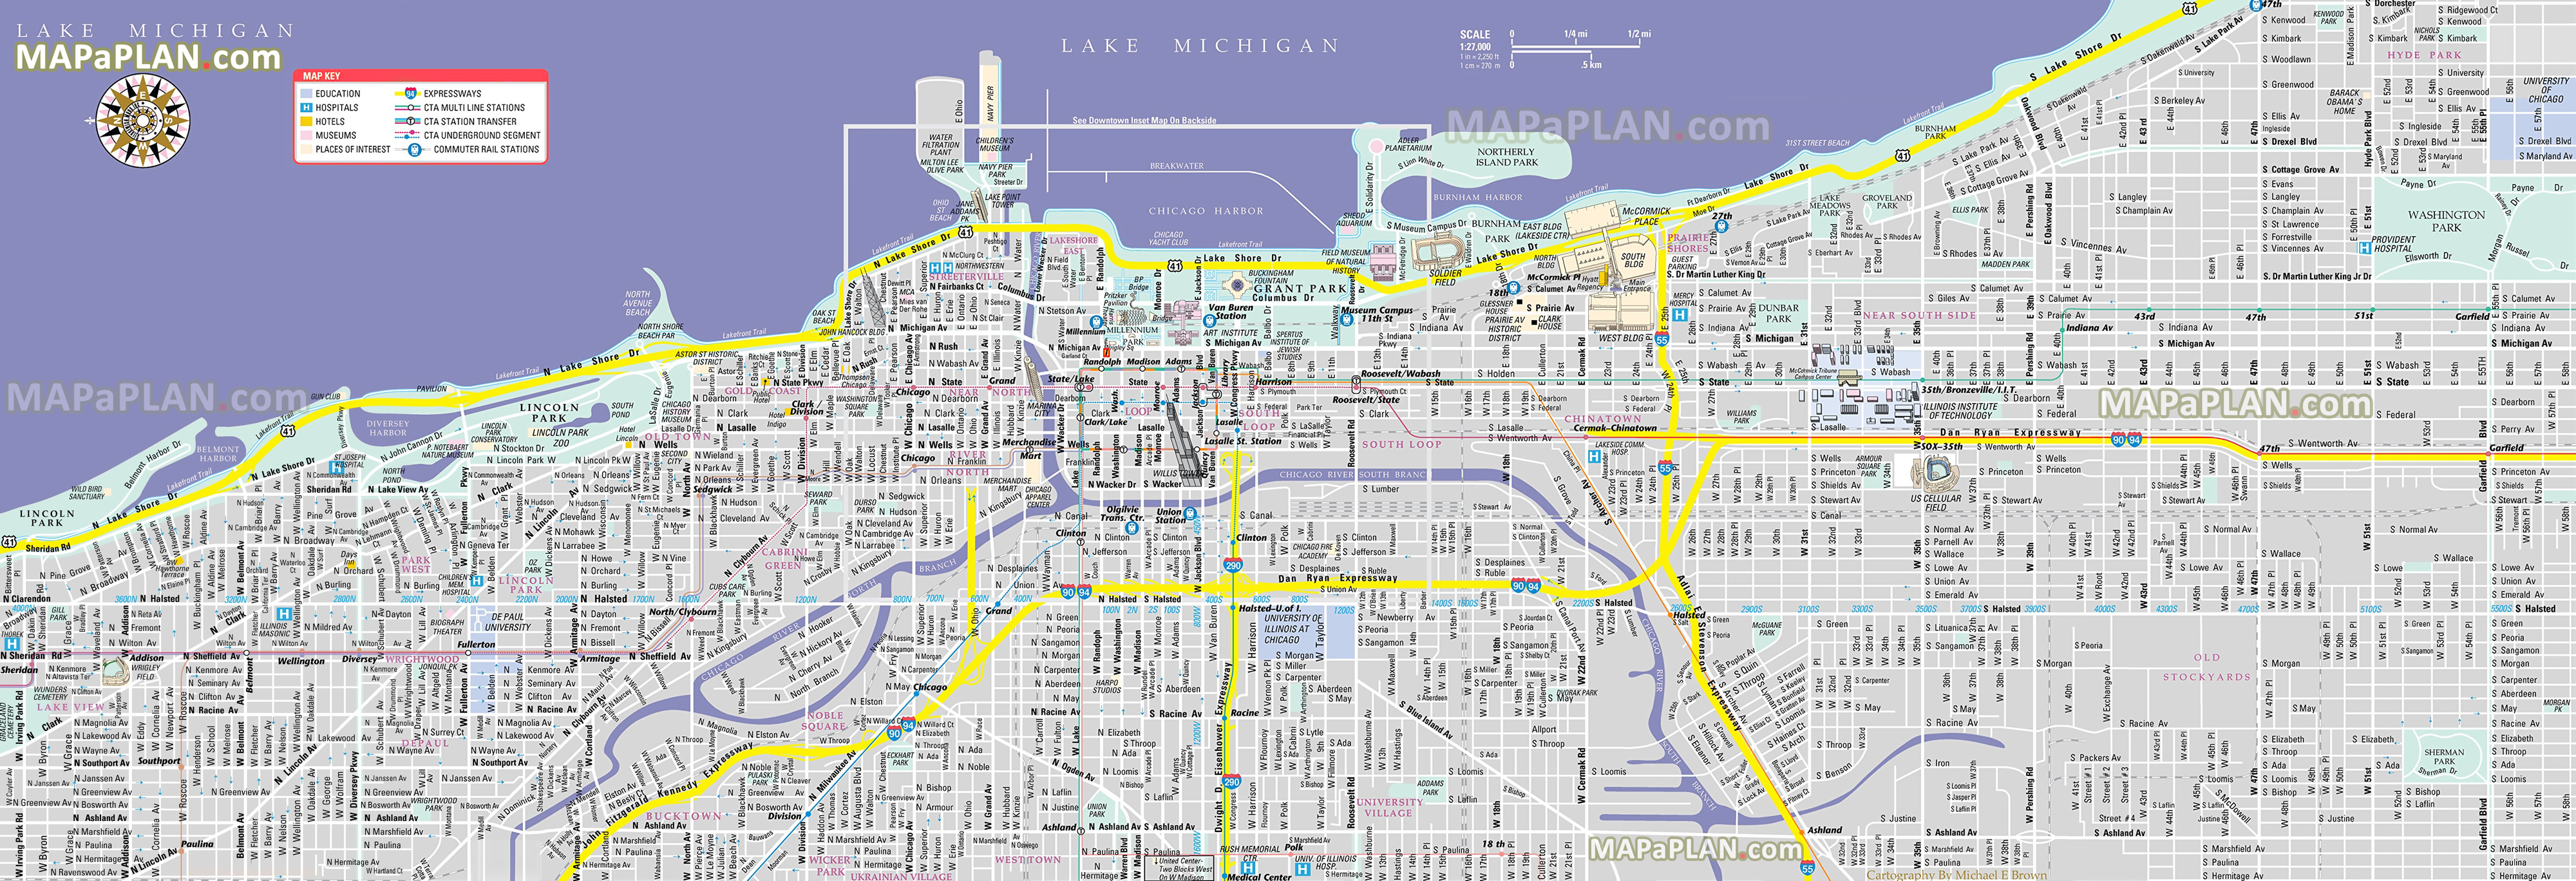 Chicago Maps - Top Tourist Attractions - Free, Printable City Street Map - Printable Street Maps Free